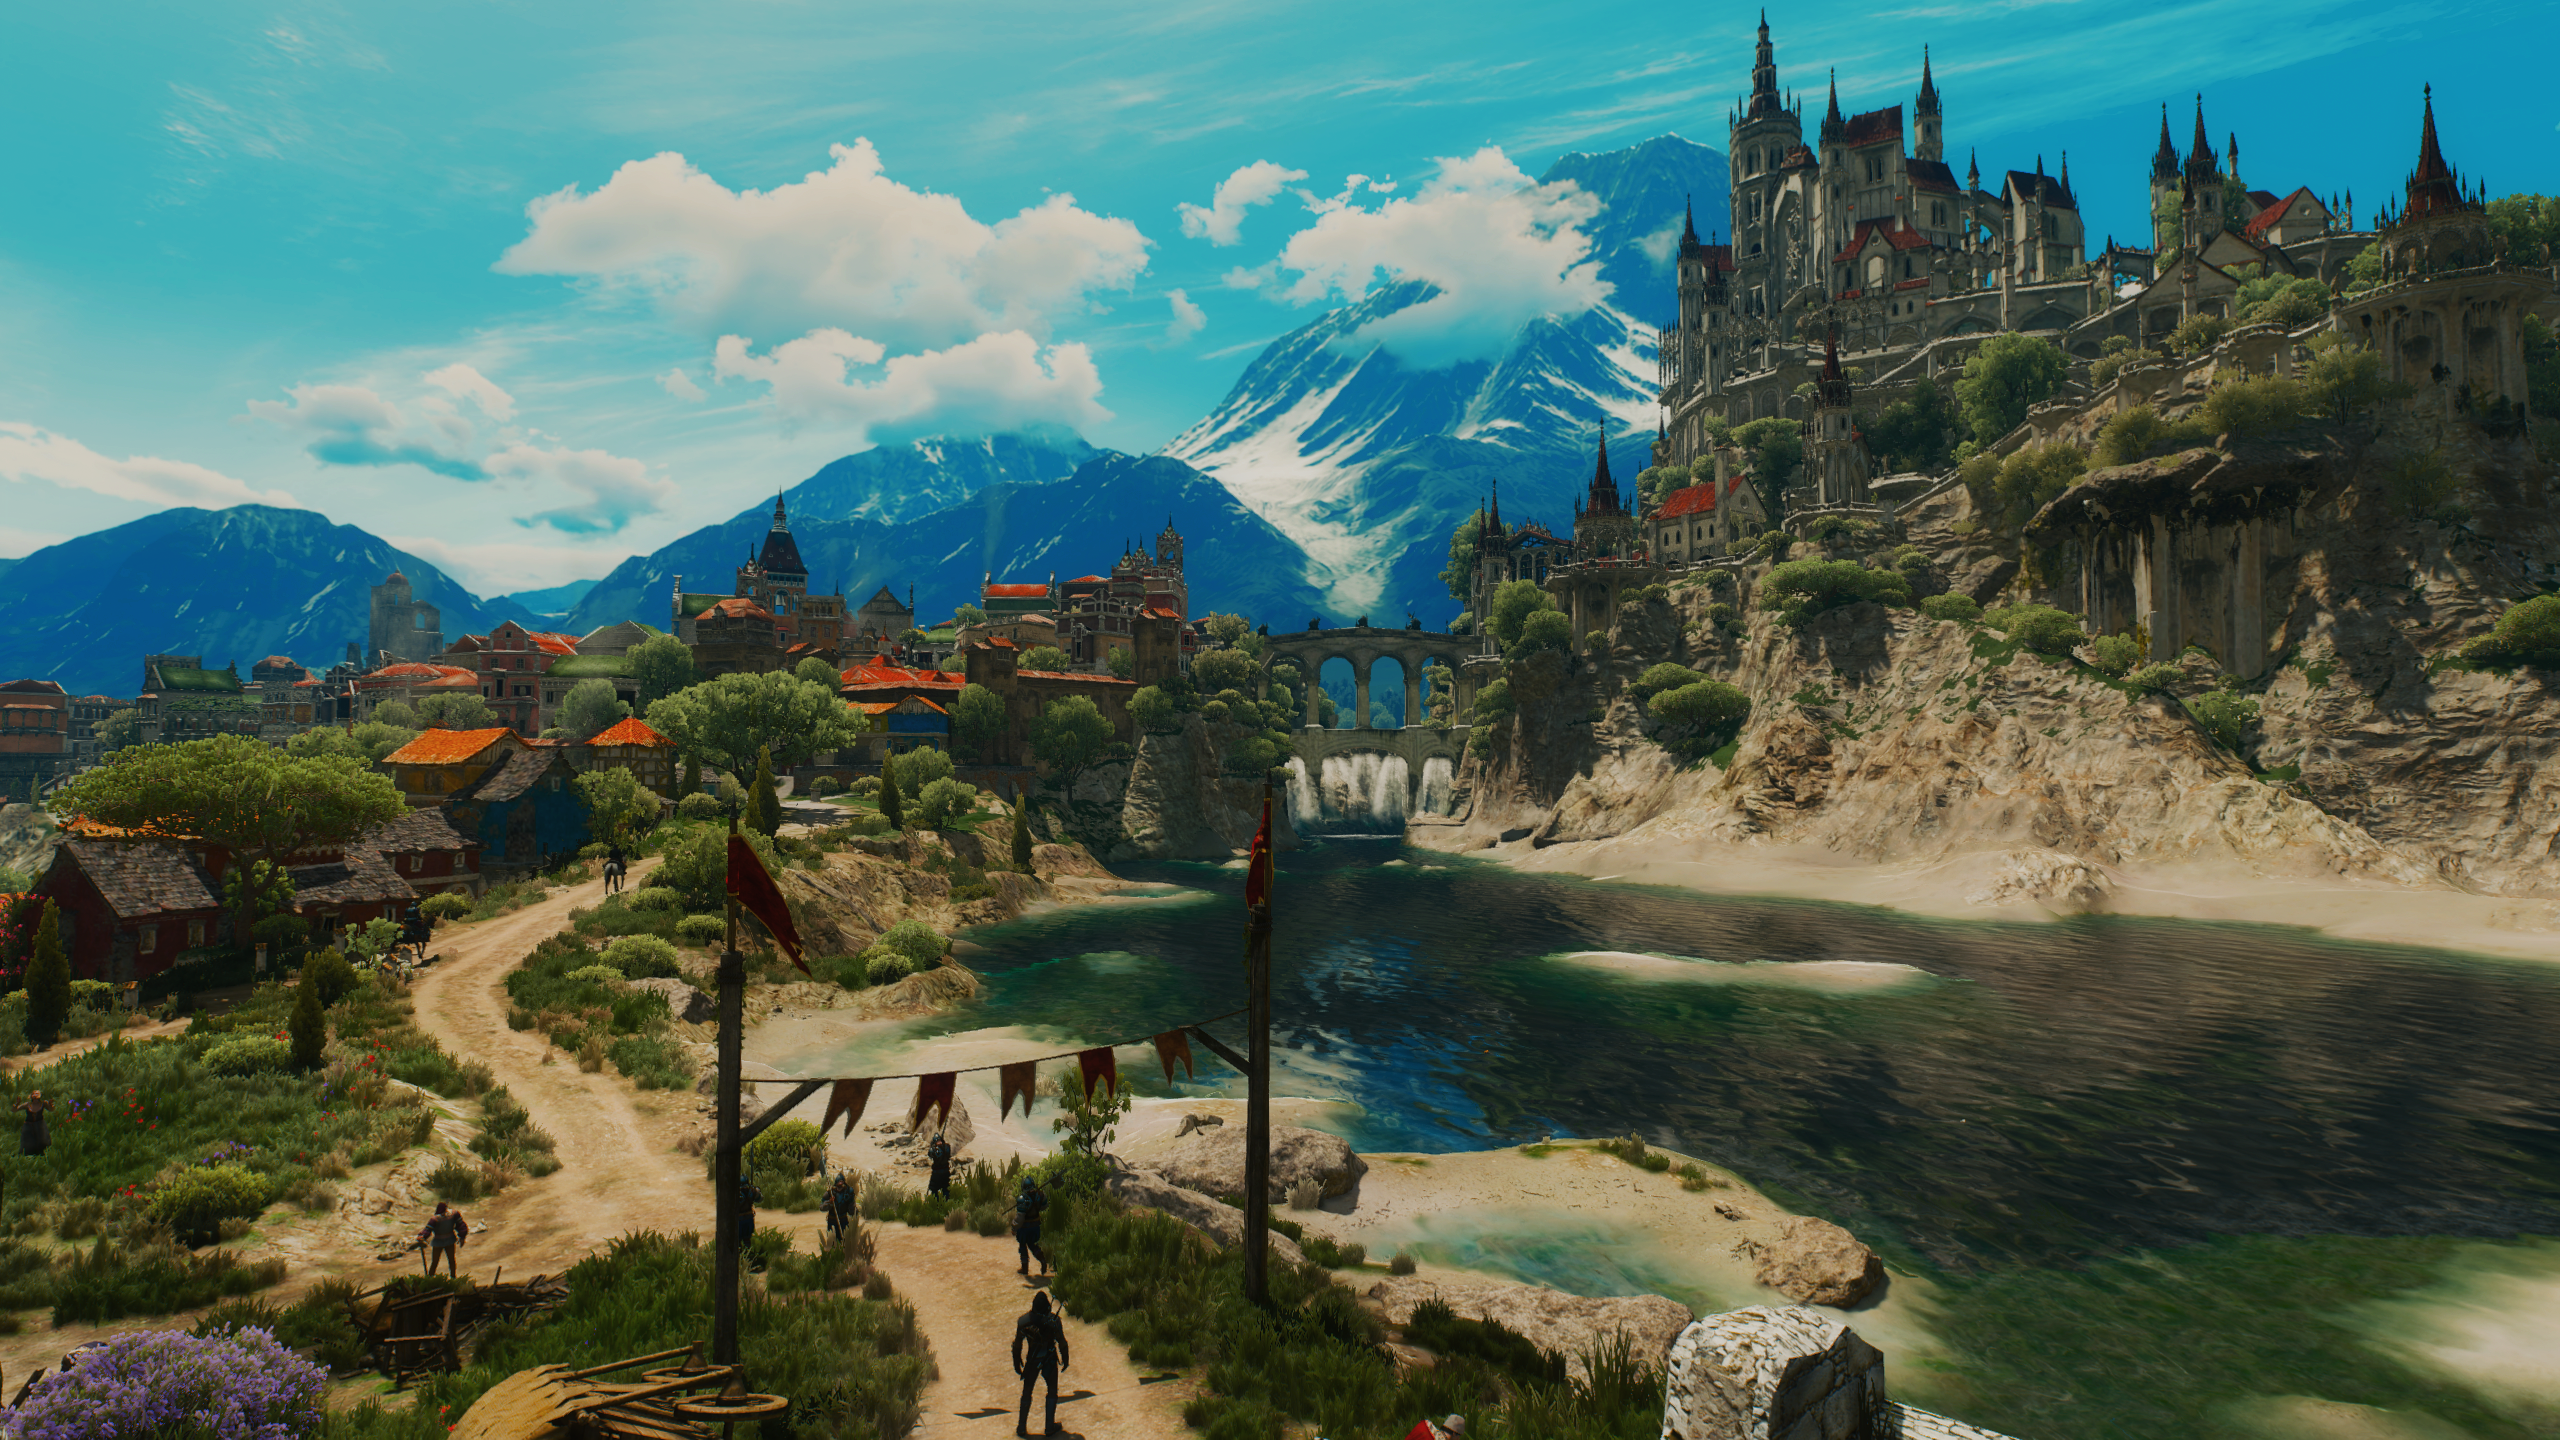 Toussaint is too beautiful #TheWitcher3 #PS4 #WILDHUNT #PS4share #games  #gaming #TheWitcher #TheWitcher3WildHunt   Witcher art, The witcher game,  Fantasy world